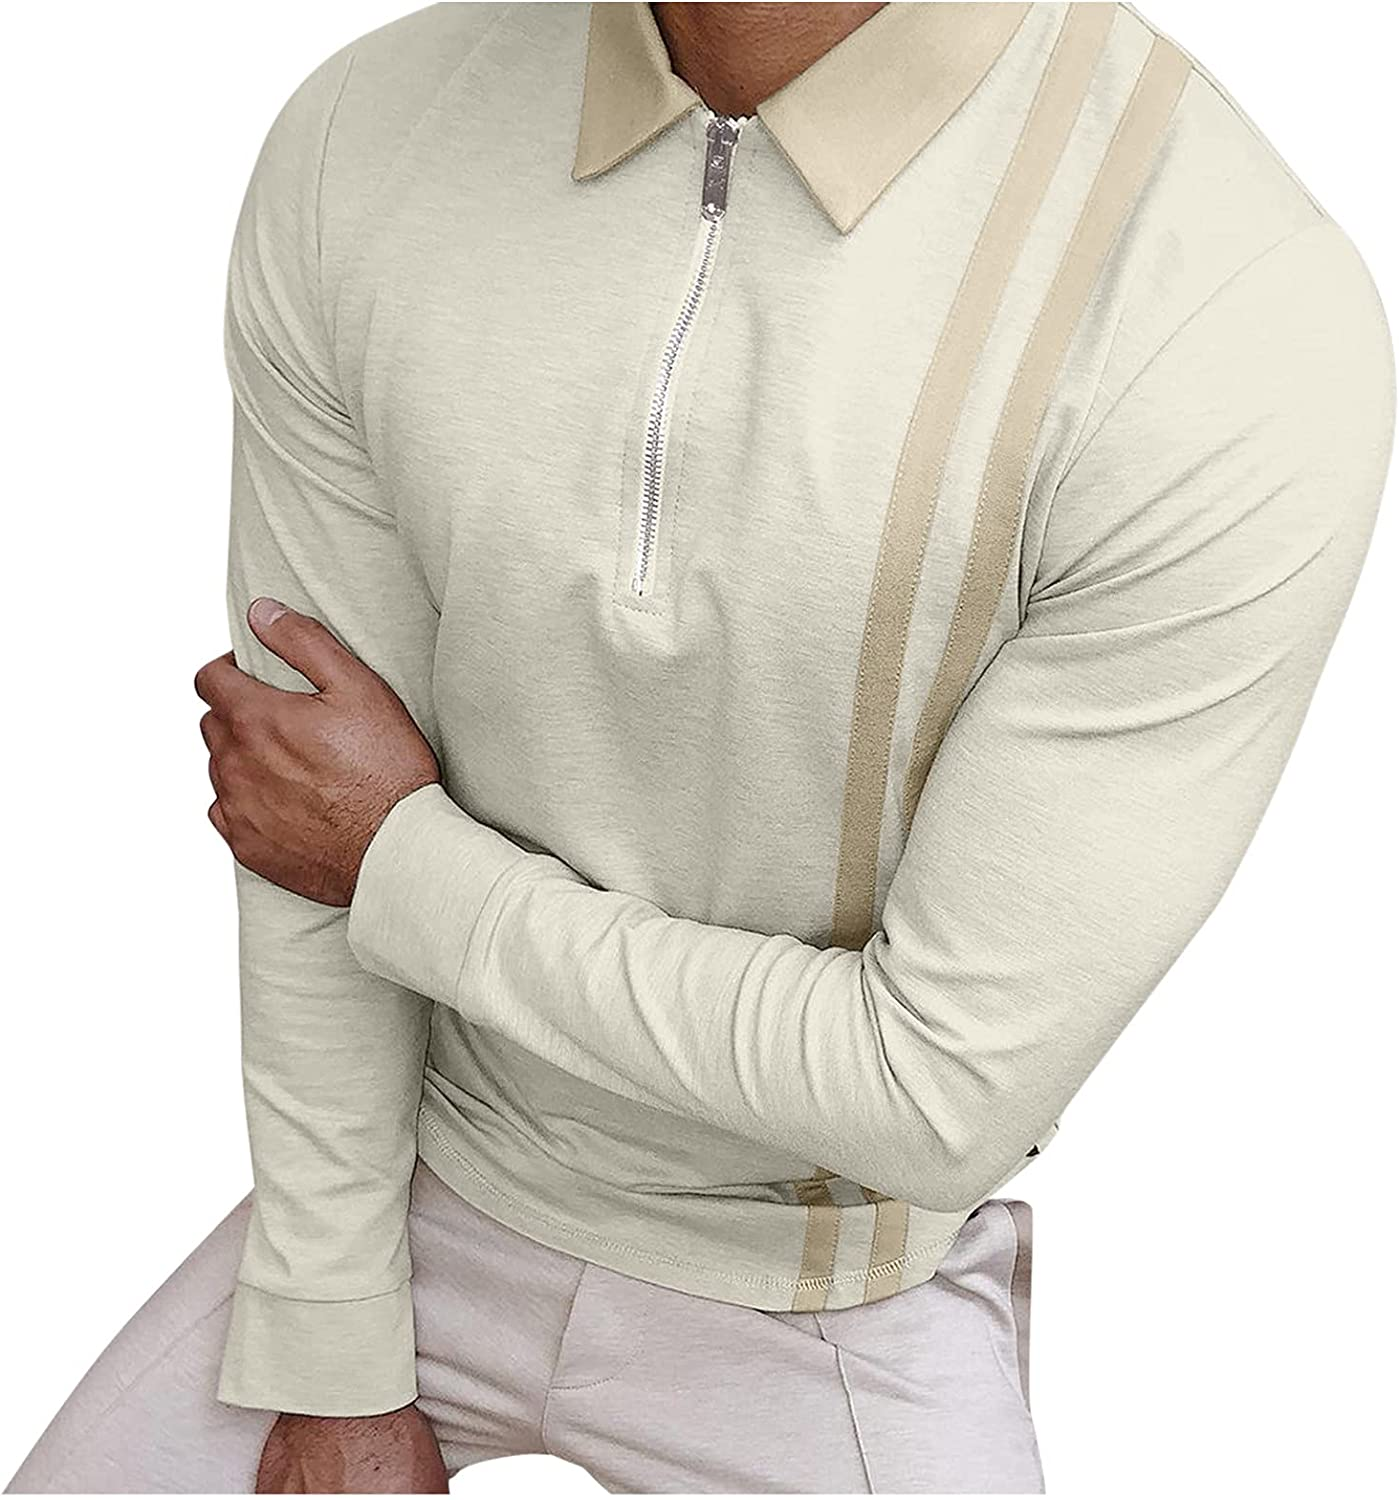 PAOGE Men's Autumn Striped Long Sleeve Turtleneck Fashion Casual Bottoming Top Blouse 2021